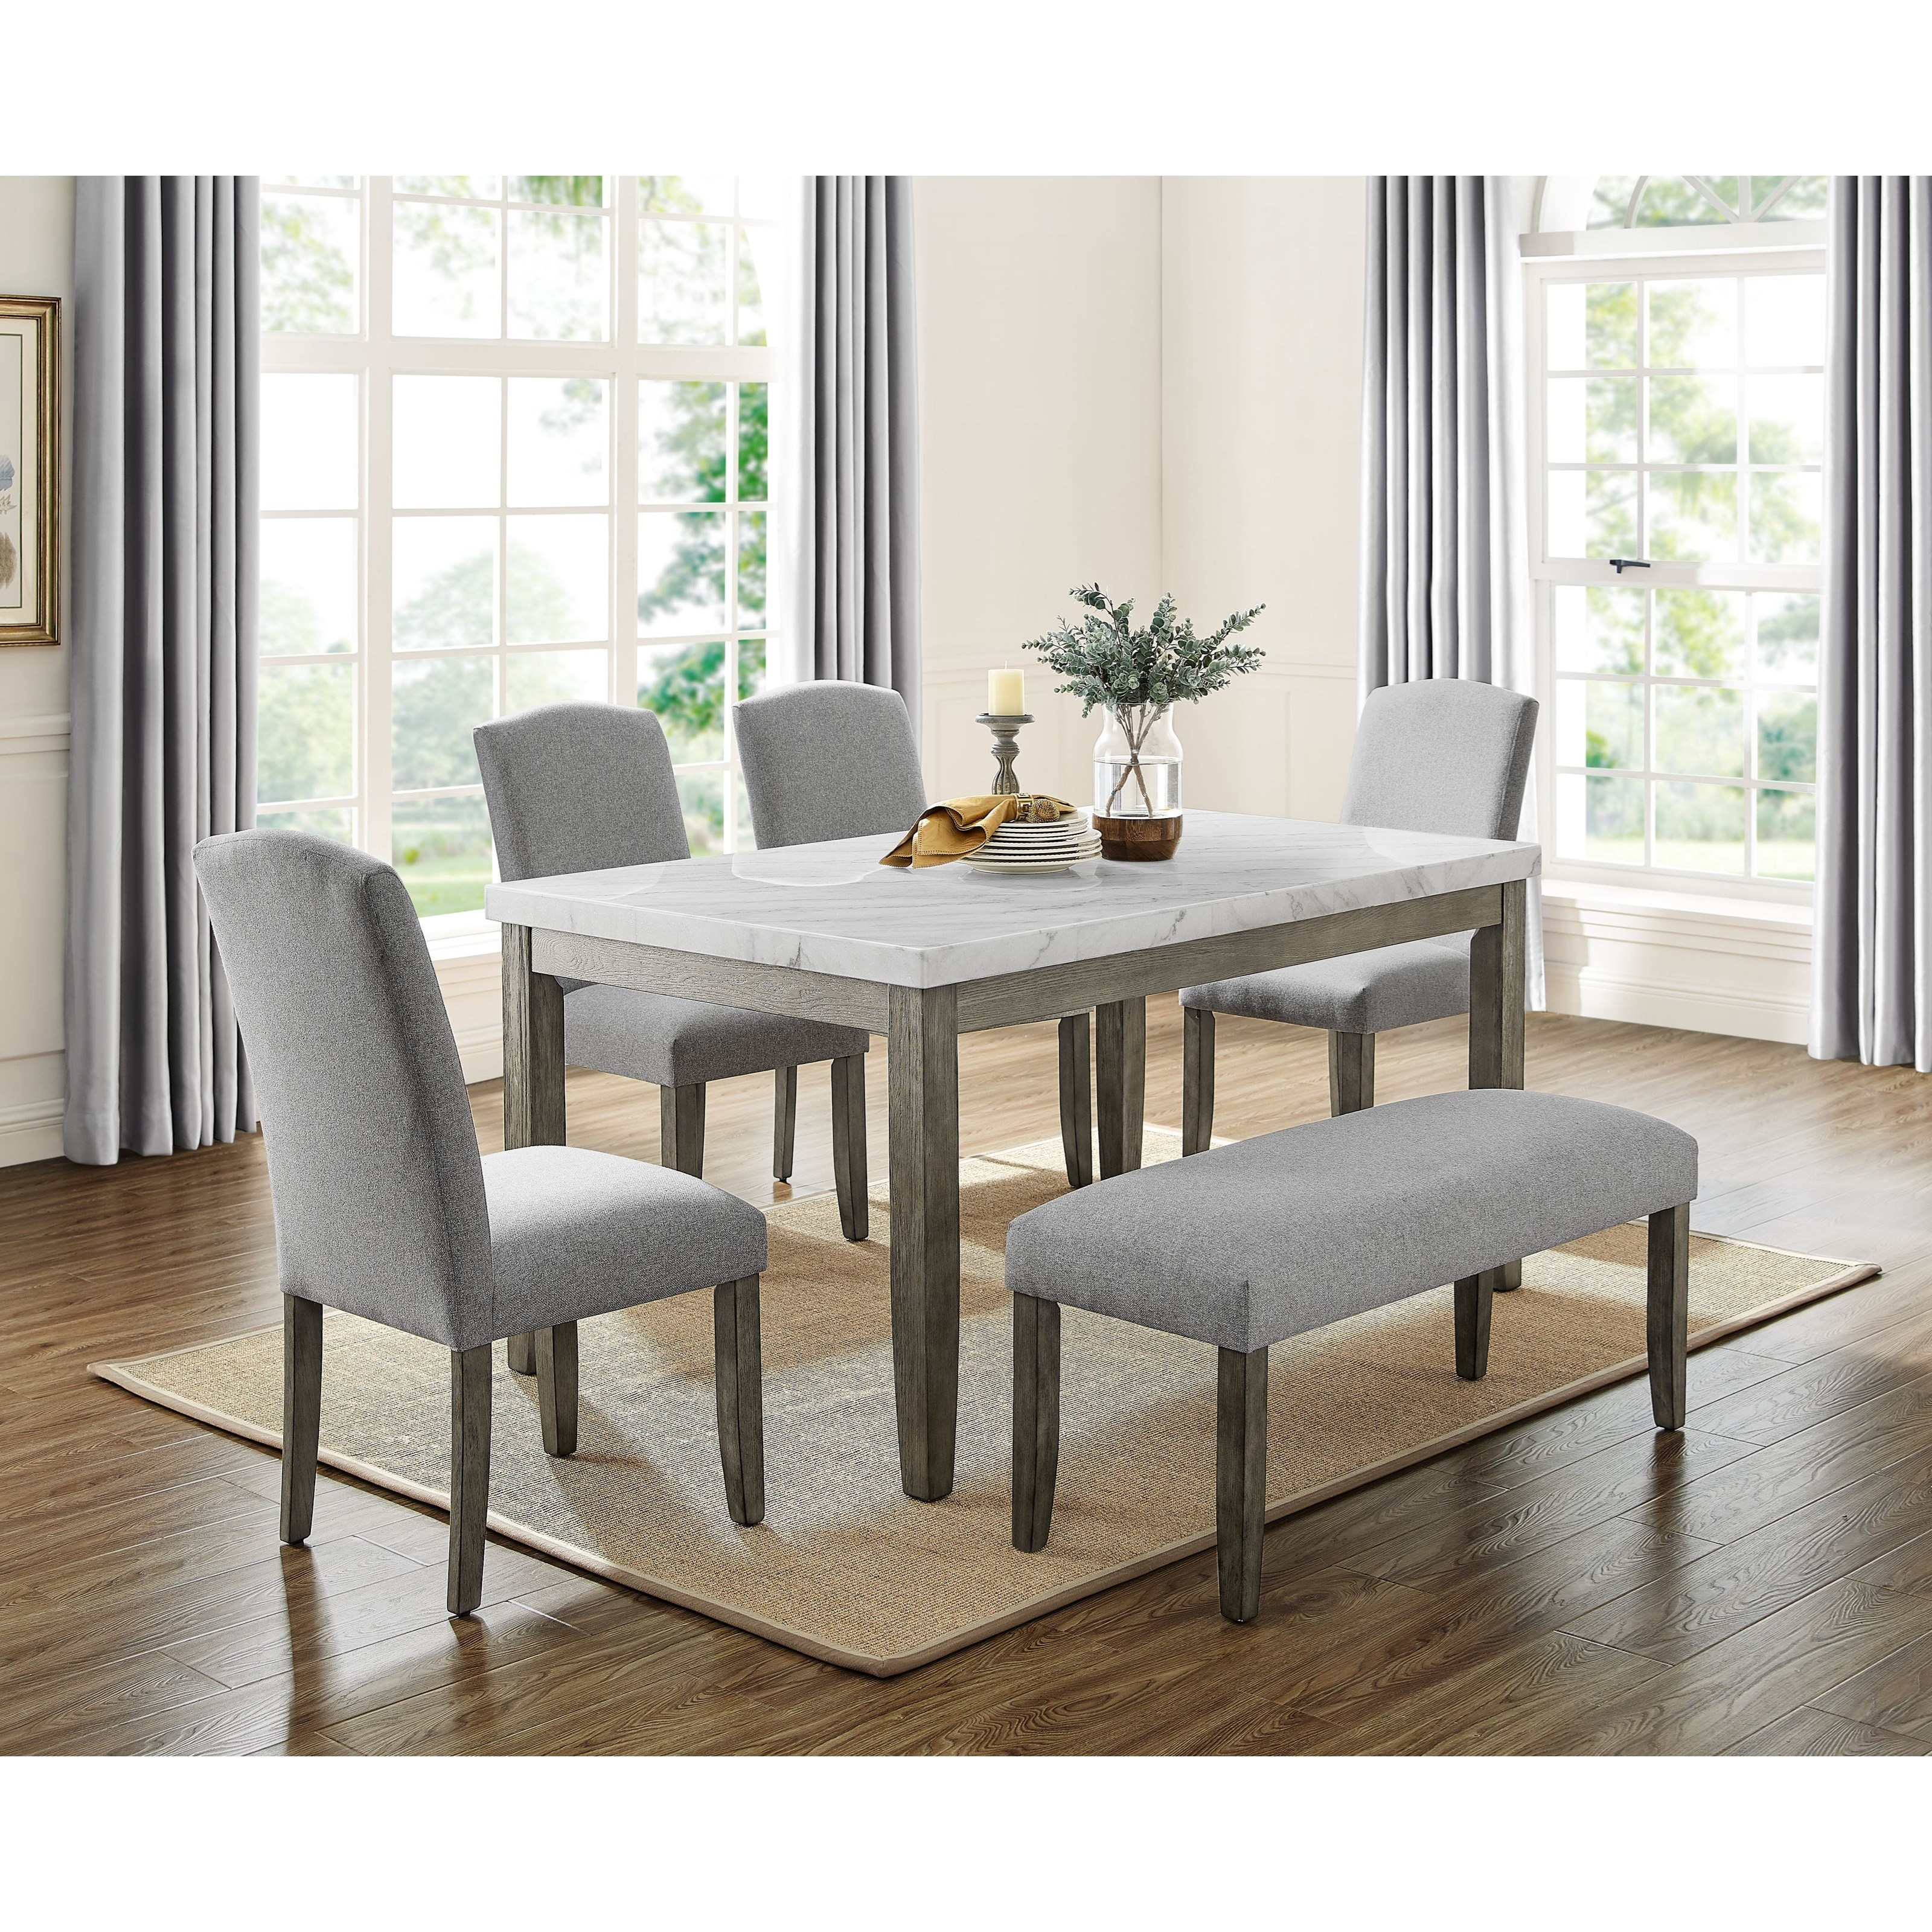 Emily Table & Chair Set with Bench by Steve Silver at Walker's Furniture